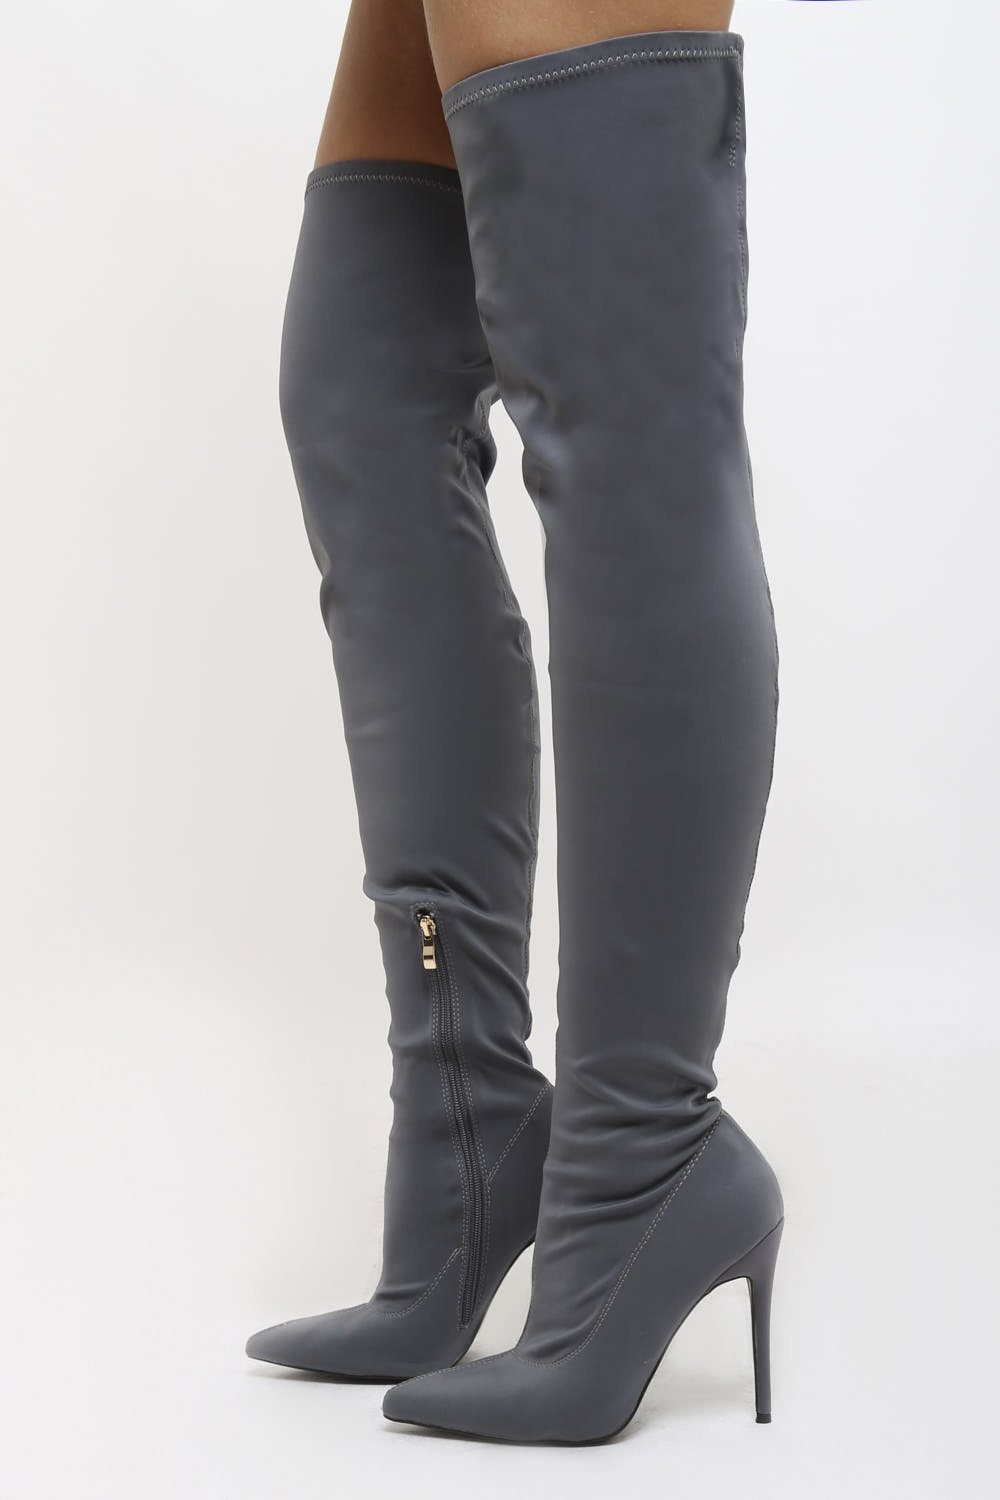 2c8663dfa293 Olivia Lycra Over the Knee Boots in Grey 63% off